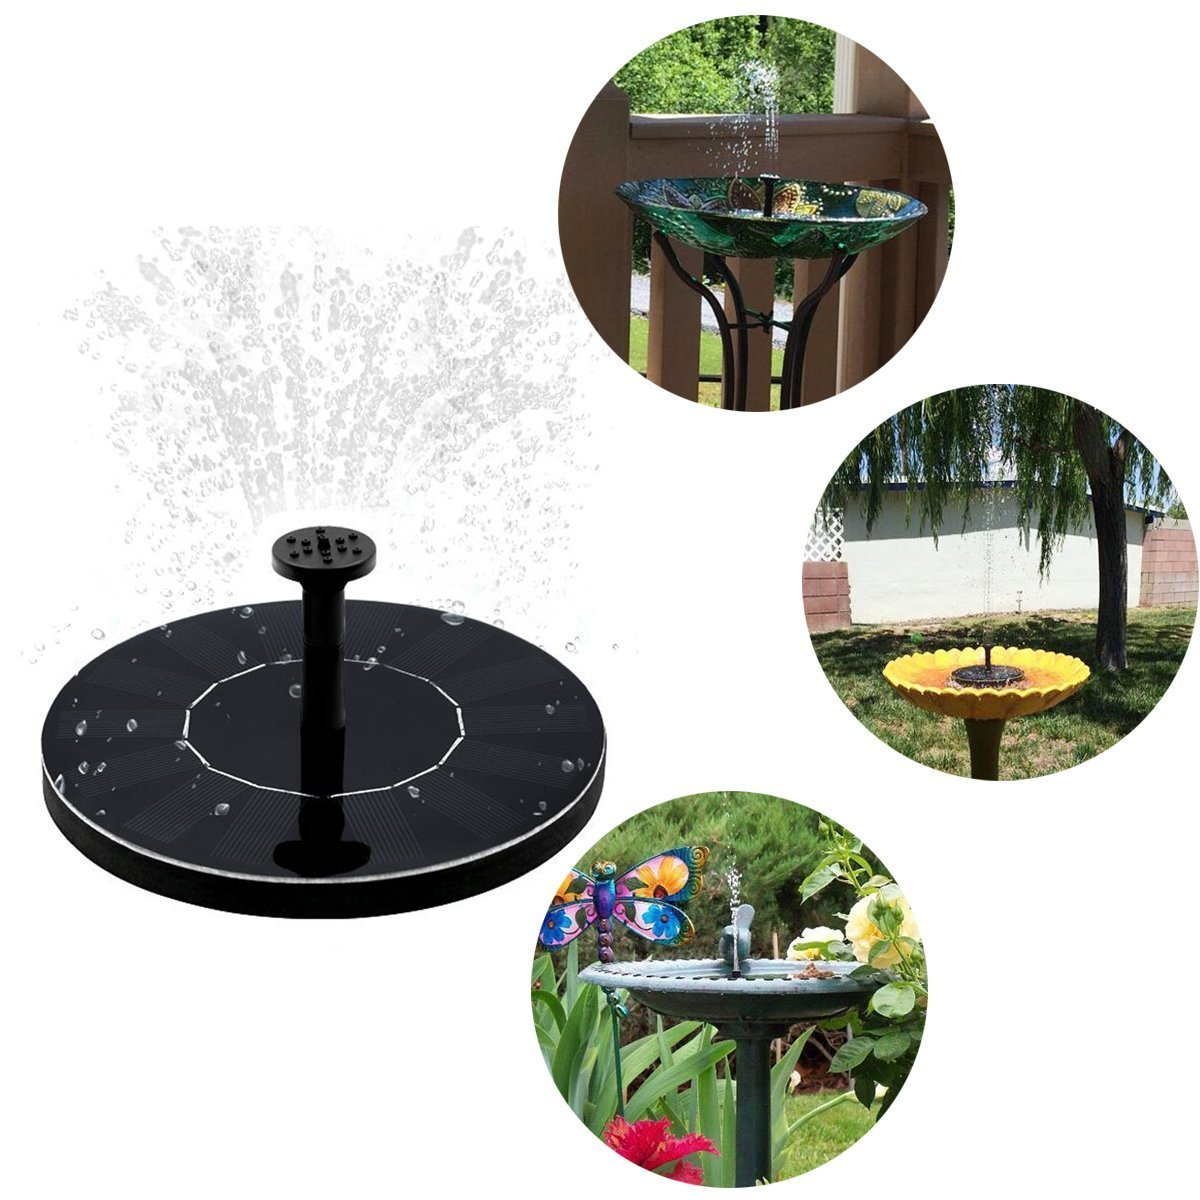 GOGOOUT Solar Fountain, Solar Powered Bird bath Fountains Pump Freestanding Submersible with 1.4W Solar Panel Kit, for Small Pond, Fish Tank, Garden Decoration by GOGOOUT (Image #6)